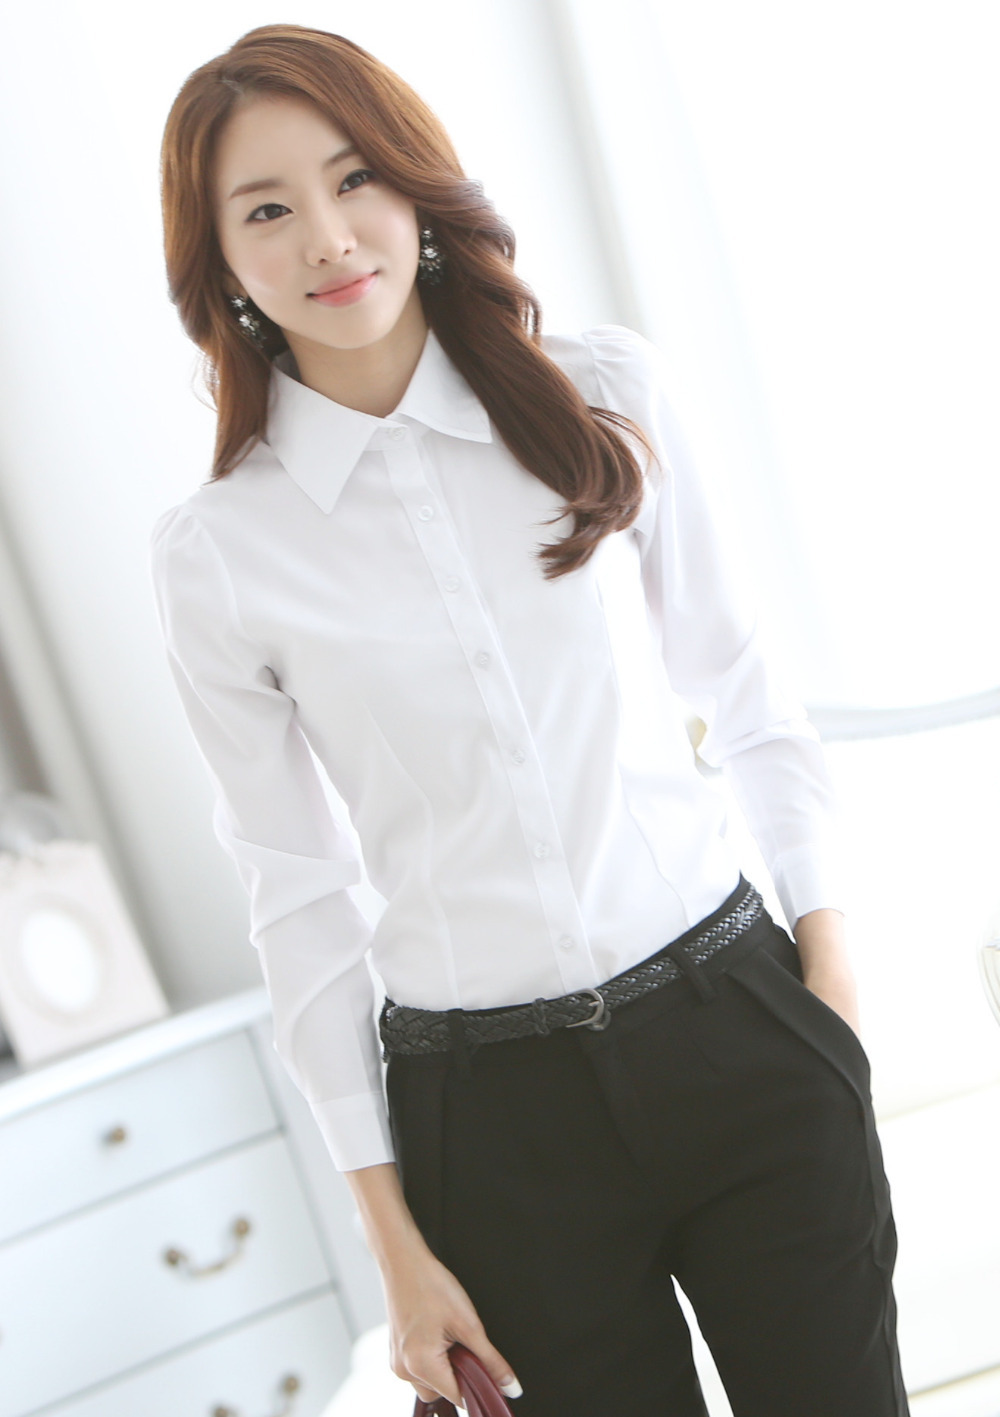 spring 2015 formal office lady chiffon blouse shirt for